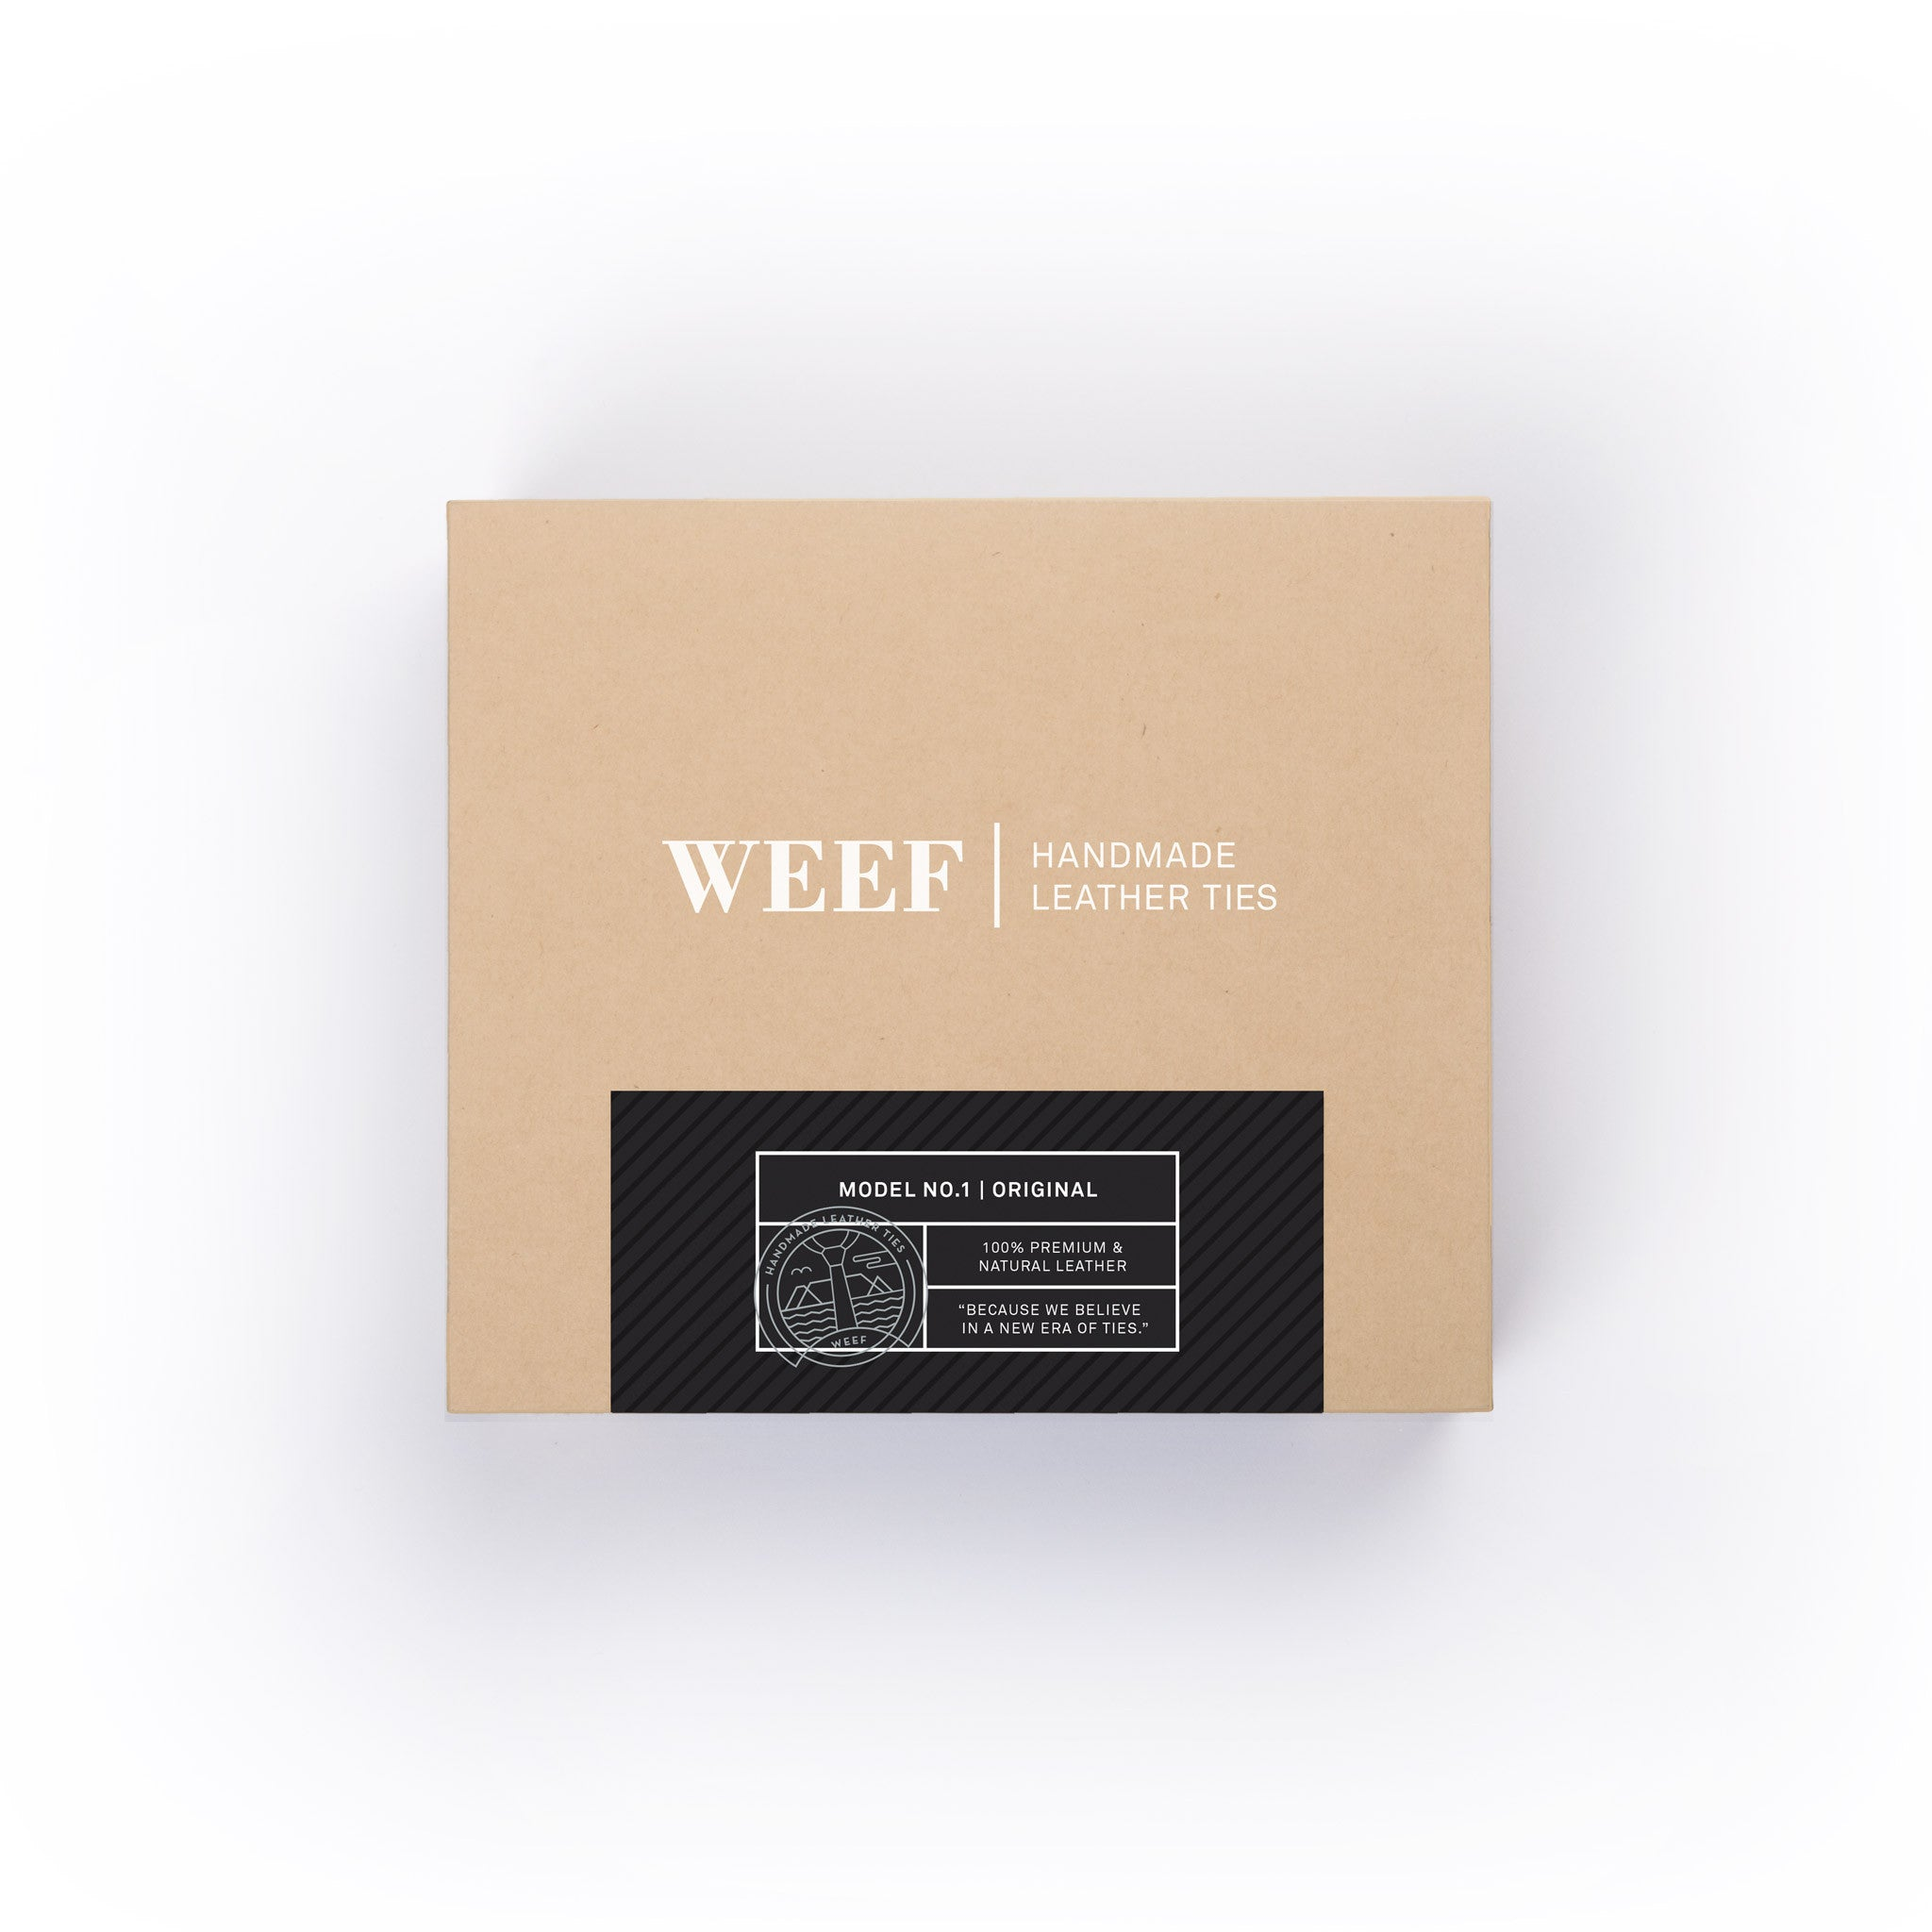 This is the premium packaging box of the matt black WEEF handmade leather tie.